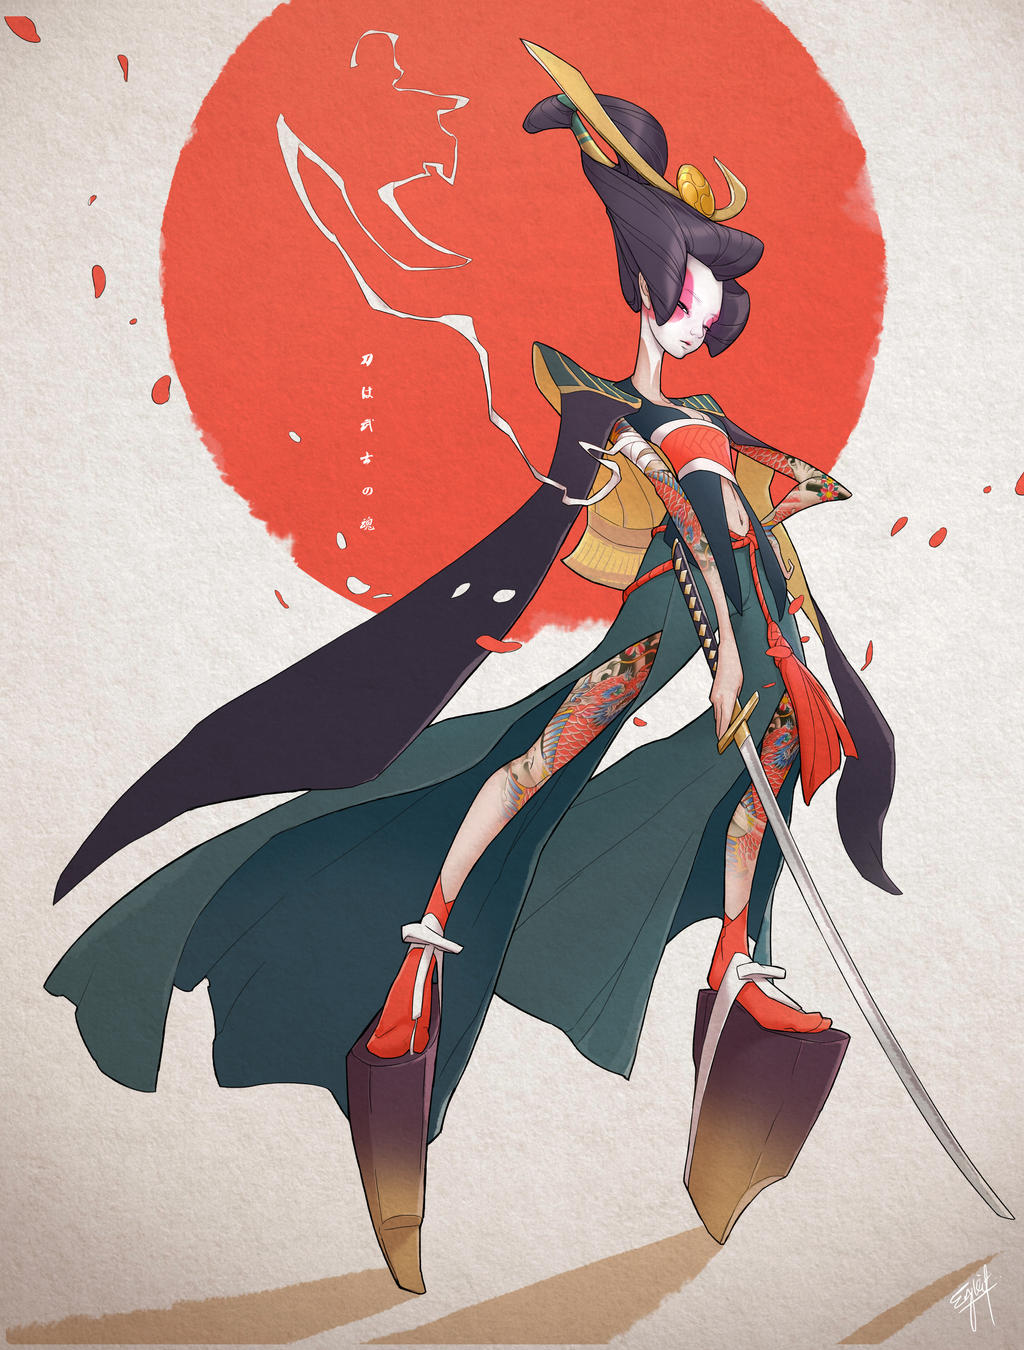 Daily Character Design Challenge : Character design challenge onna bugeisha by engkit on